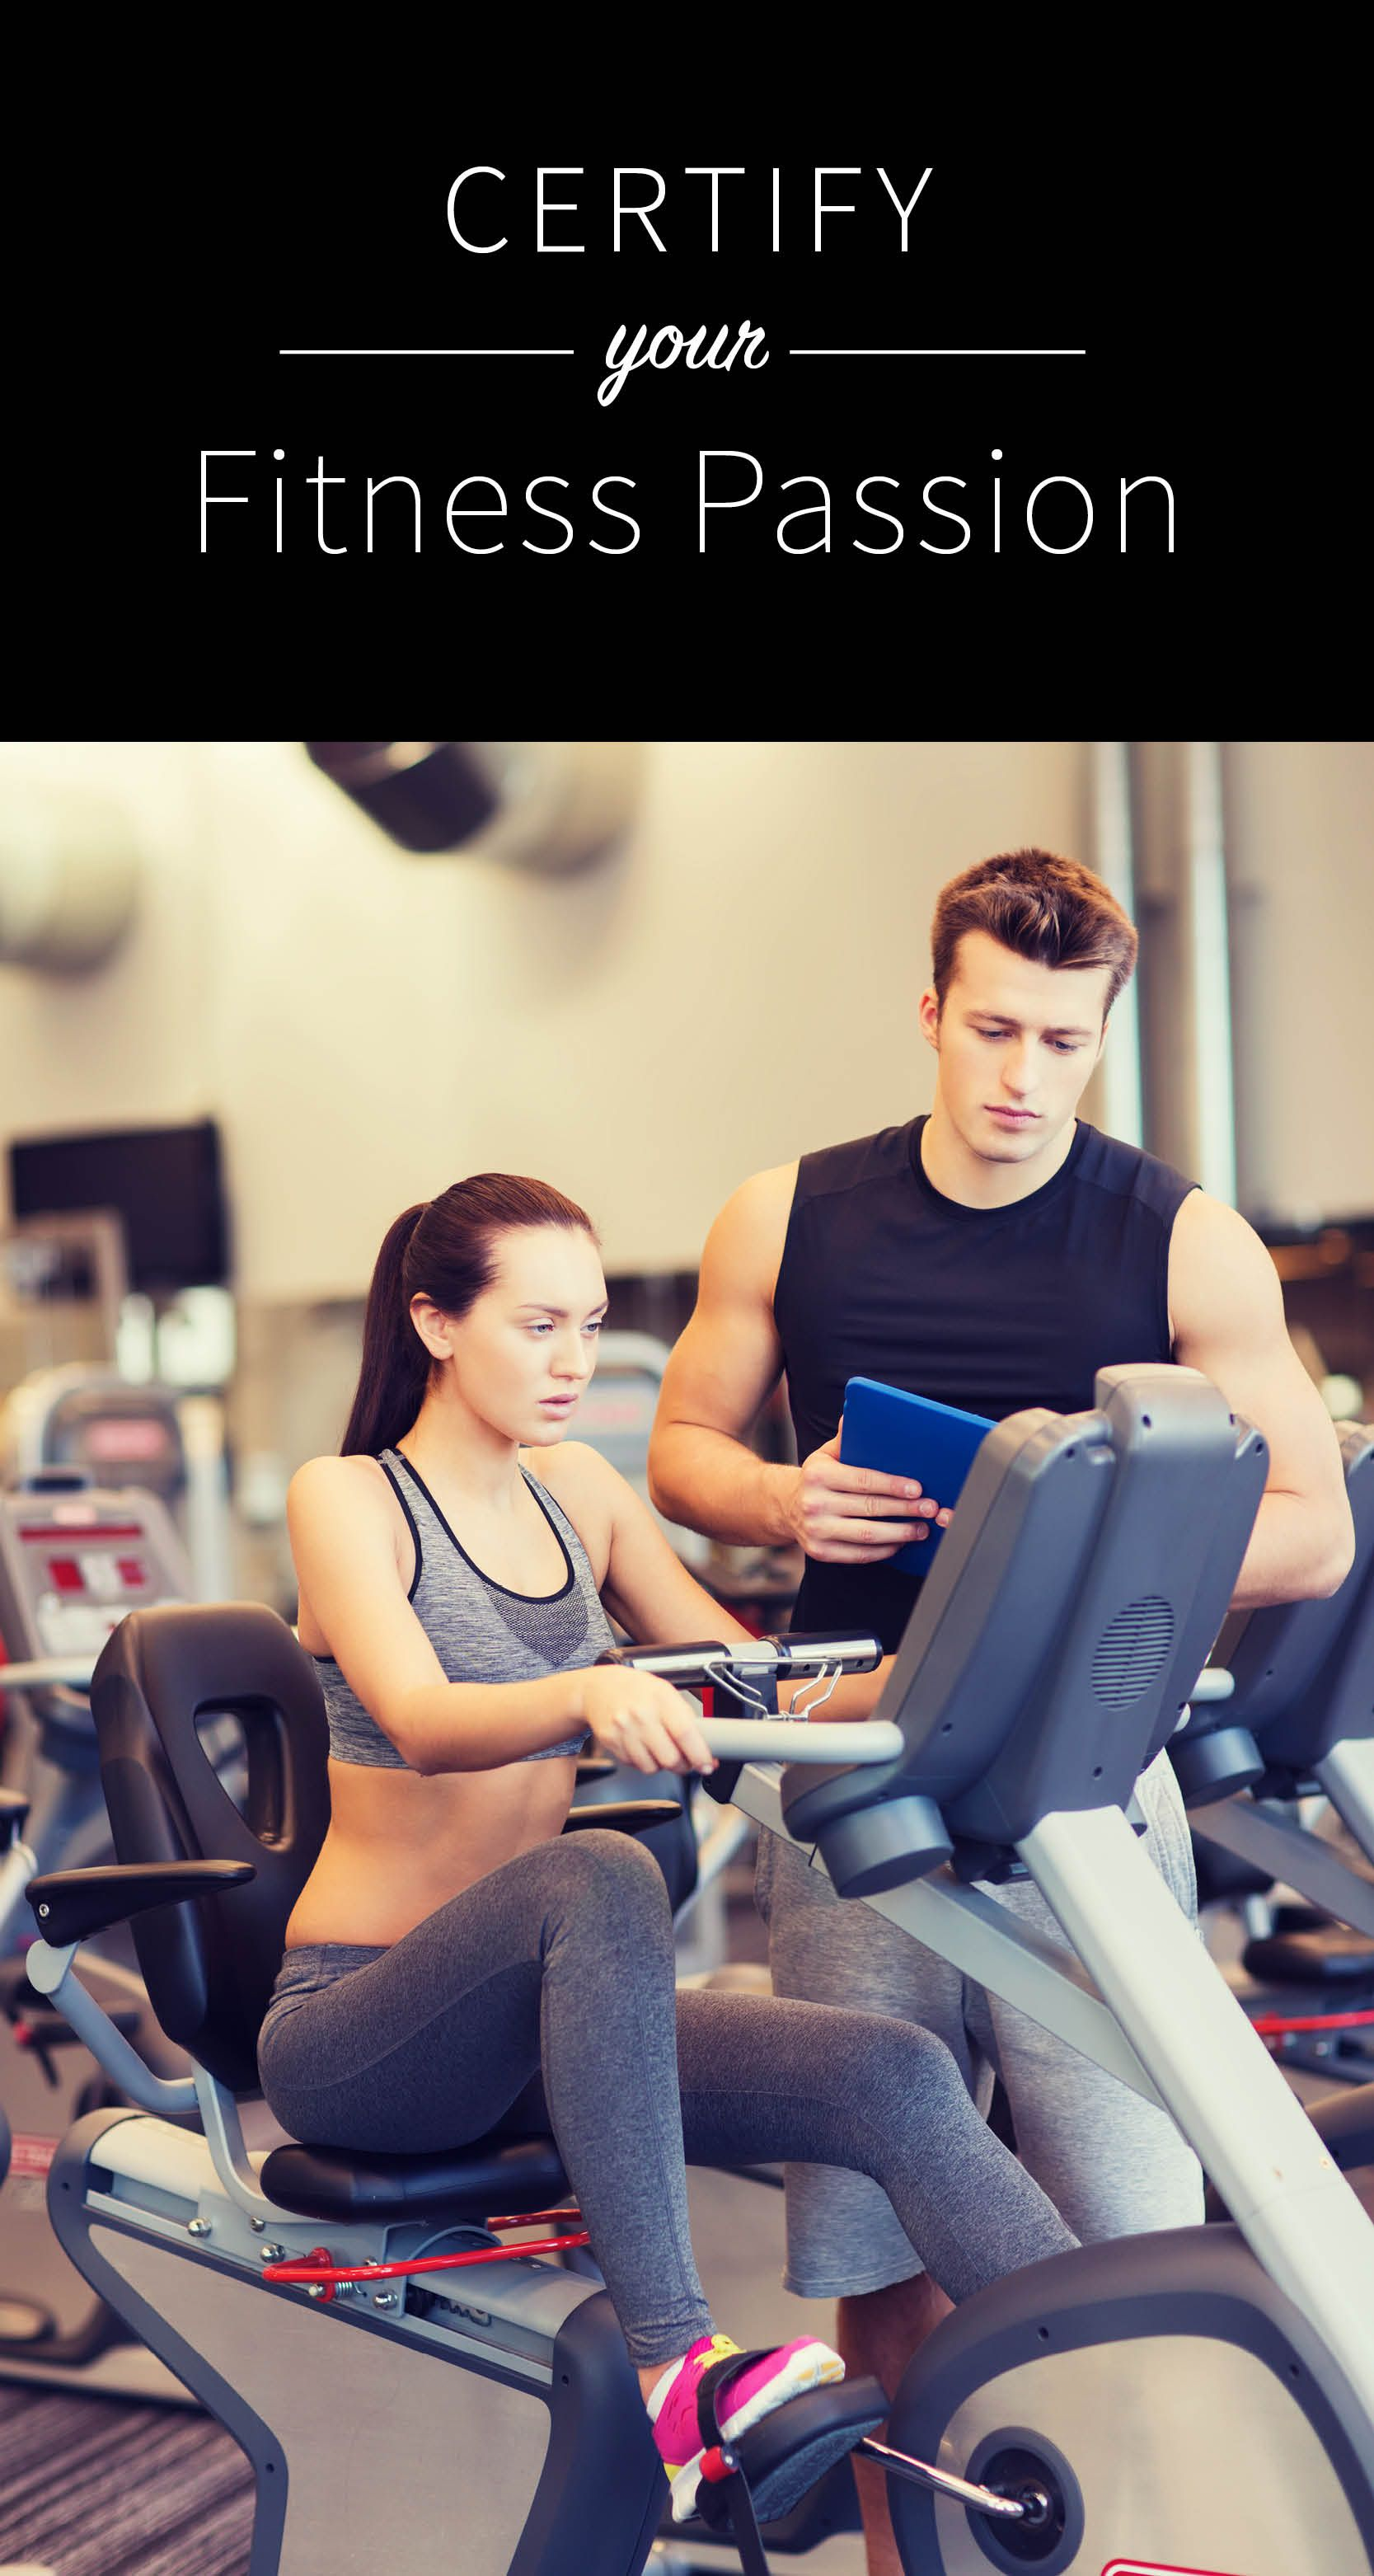 Turn The Gym Into Your Career Certify Your Fitness Passion Through